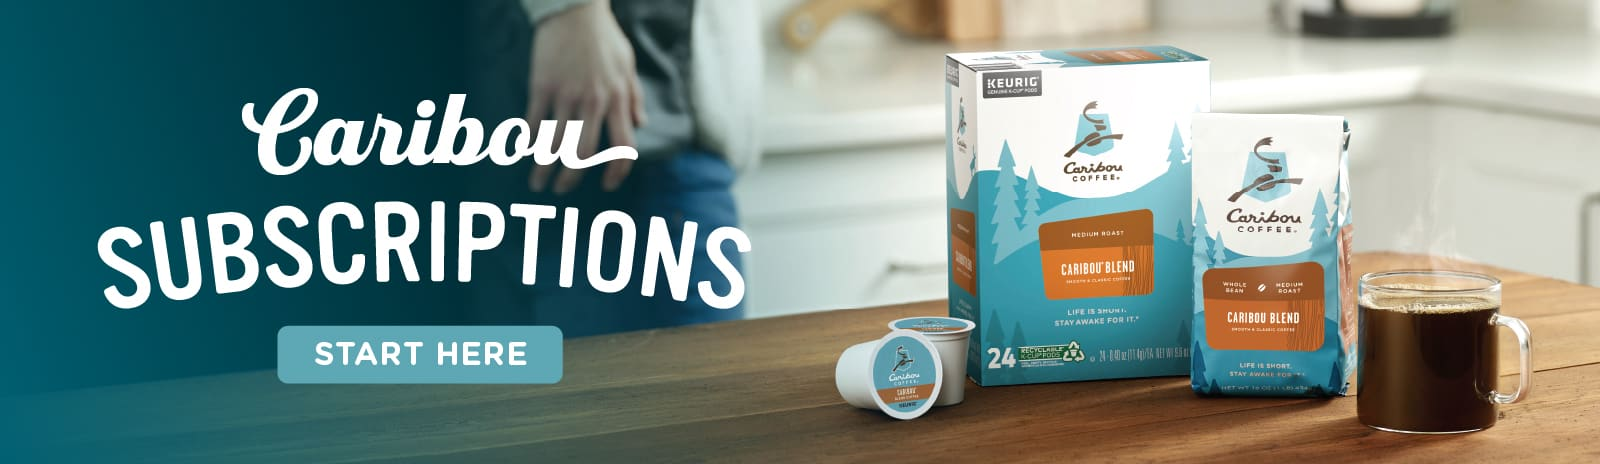 K-Cup Pods, Coffee Beans and Coffee. Caribou Subscriptions Start Here